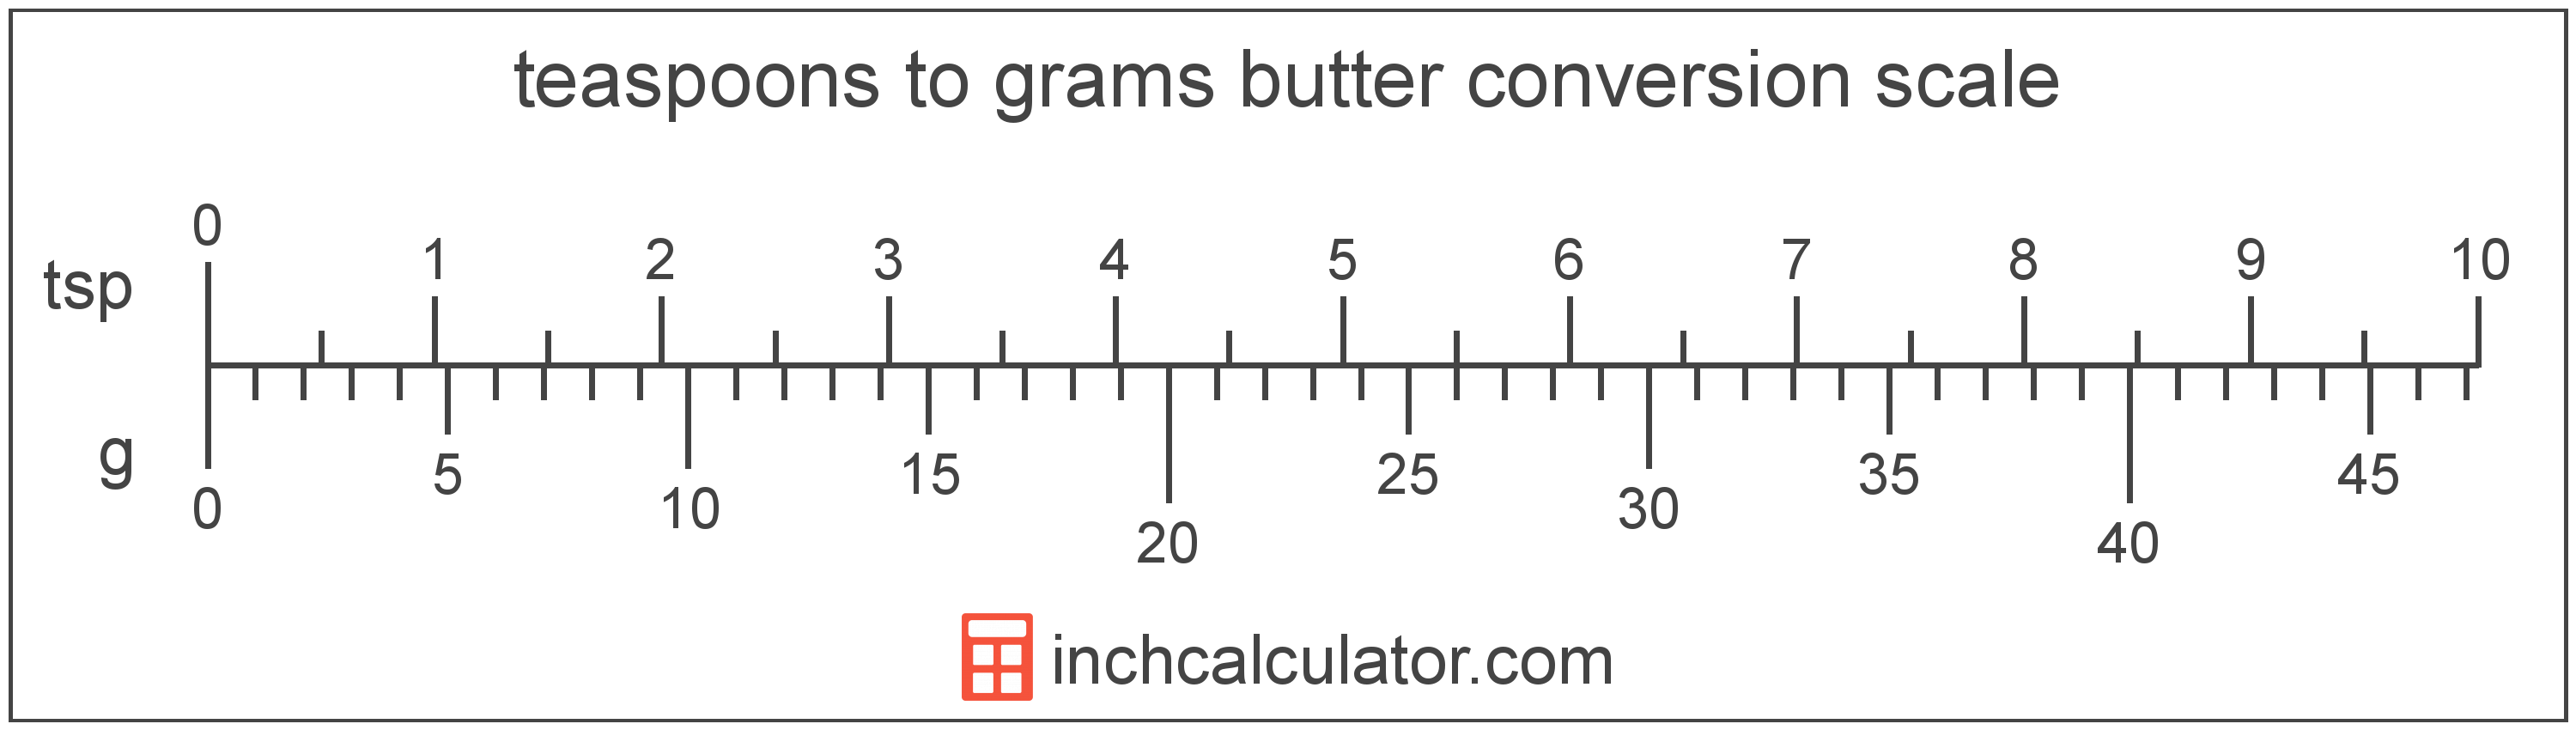 conversion scale showing teaspoons and equivalent grams butter values